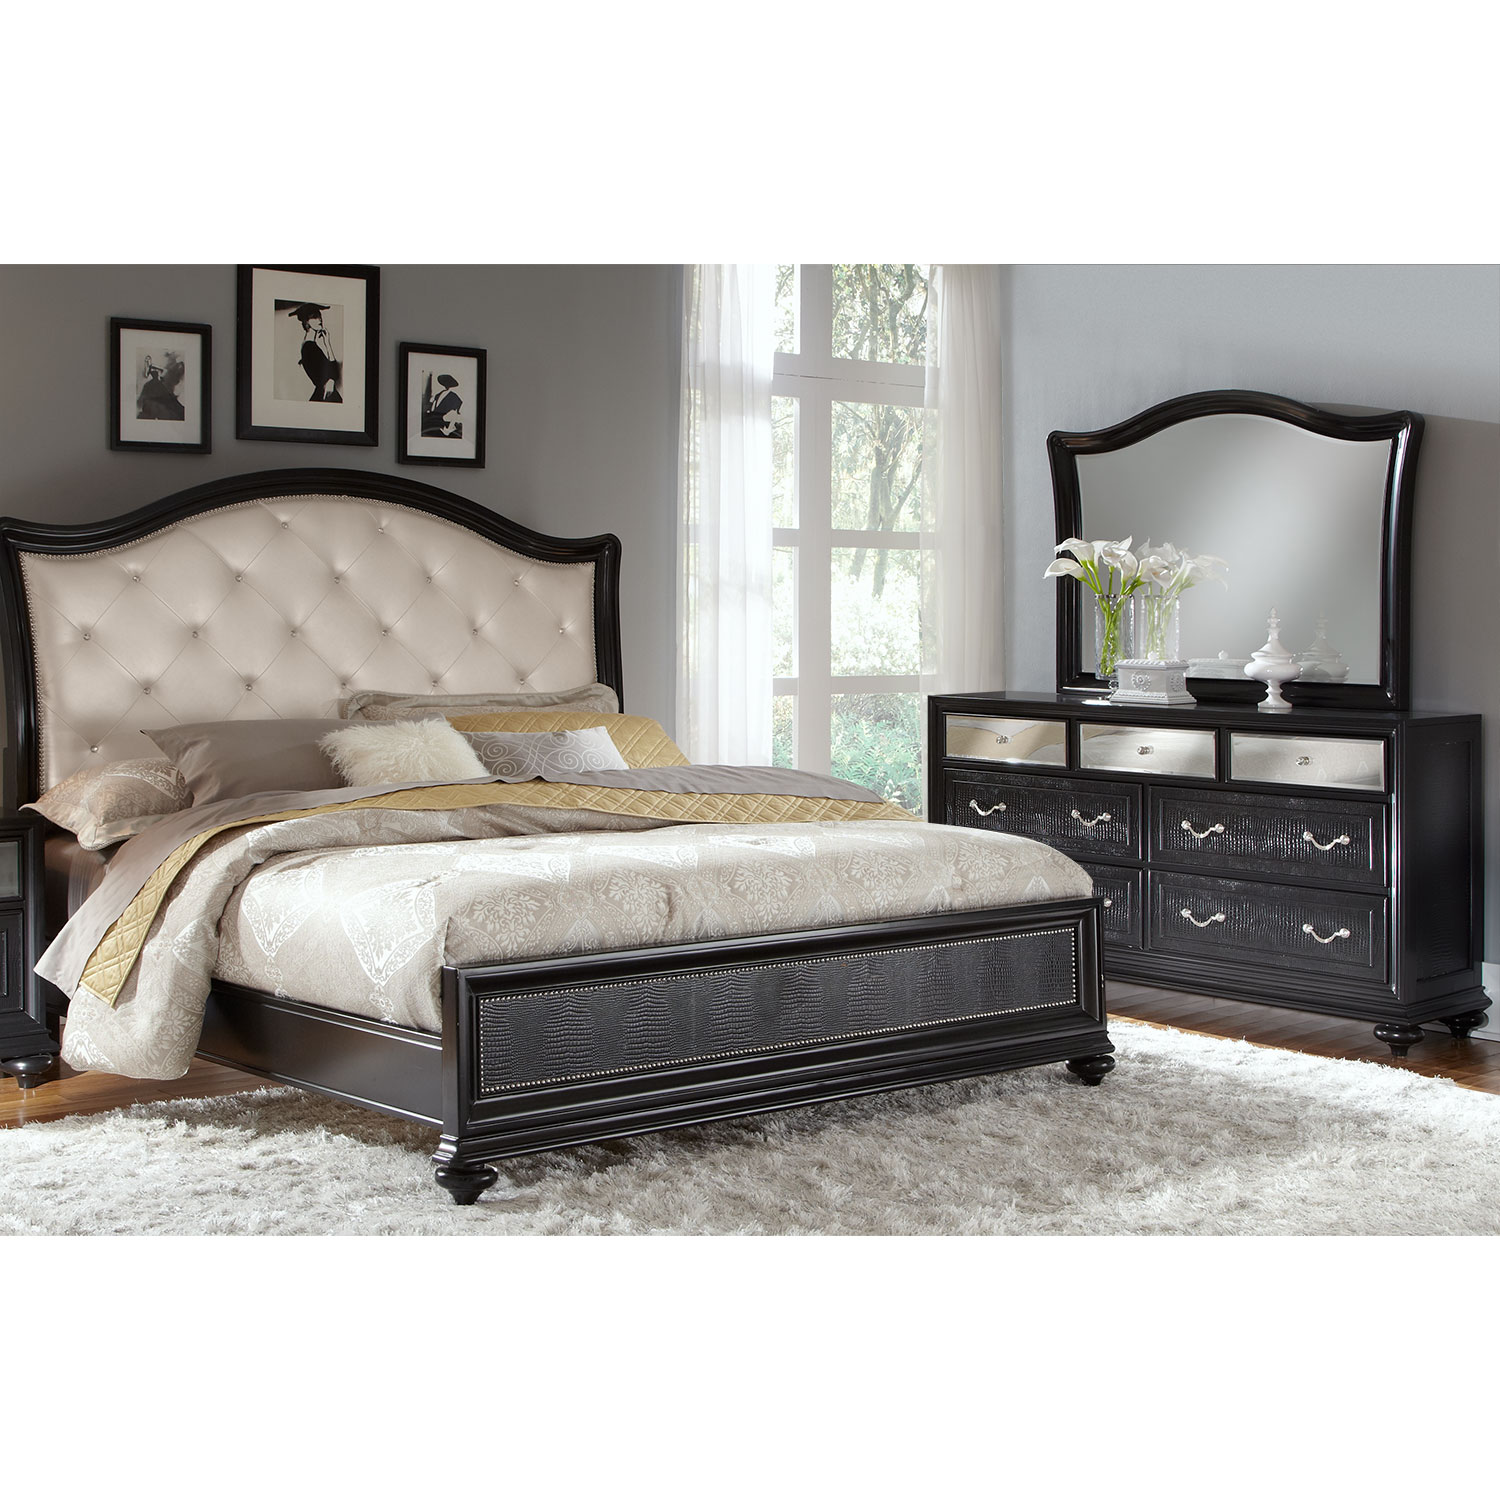 Marilyn 5-Piece Queen Bedroom Set - Ebony